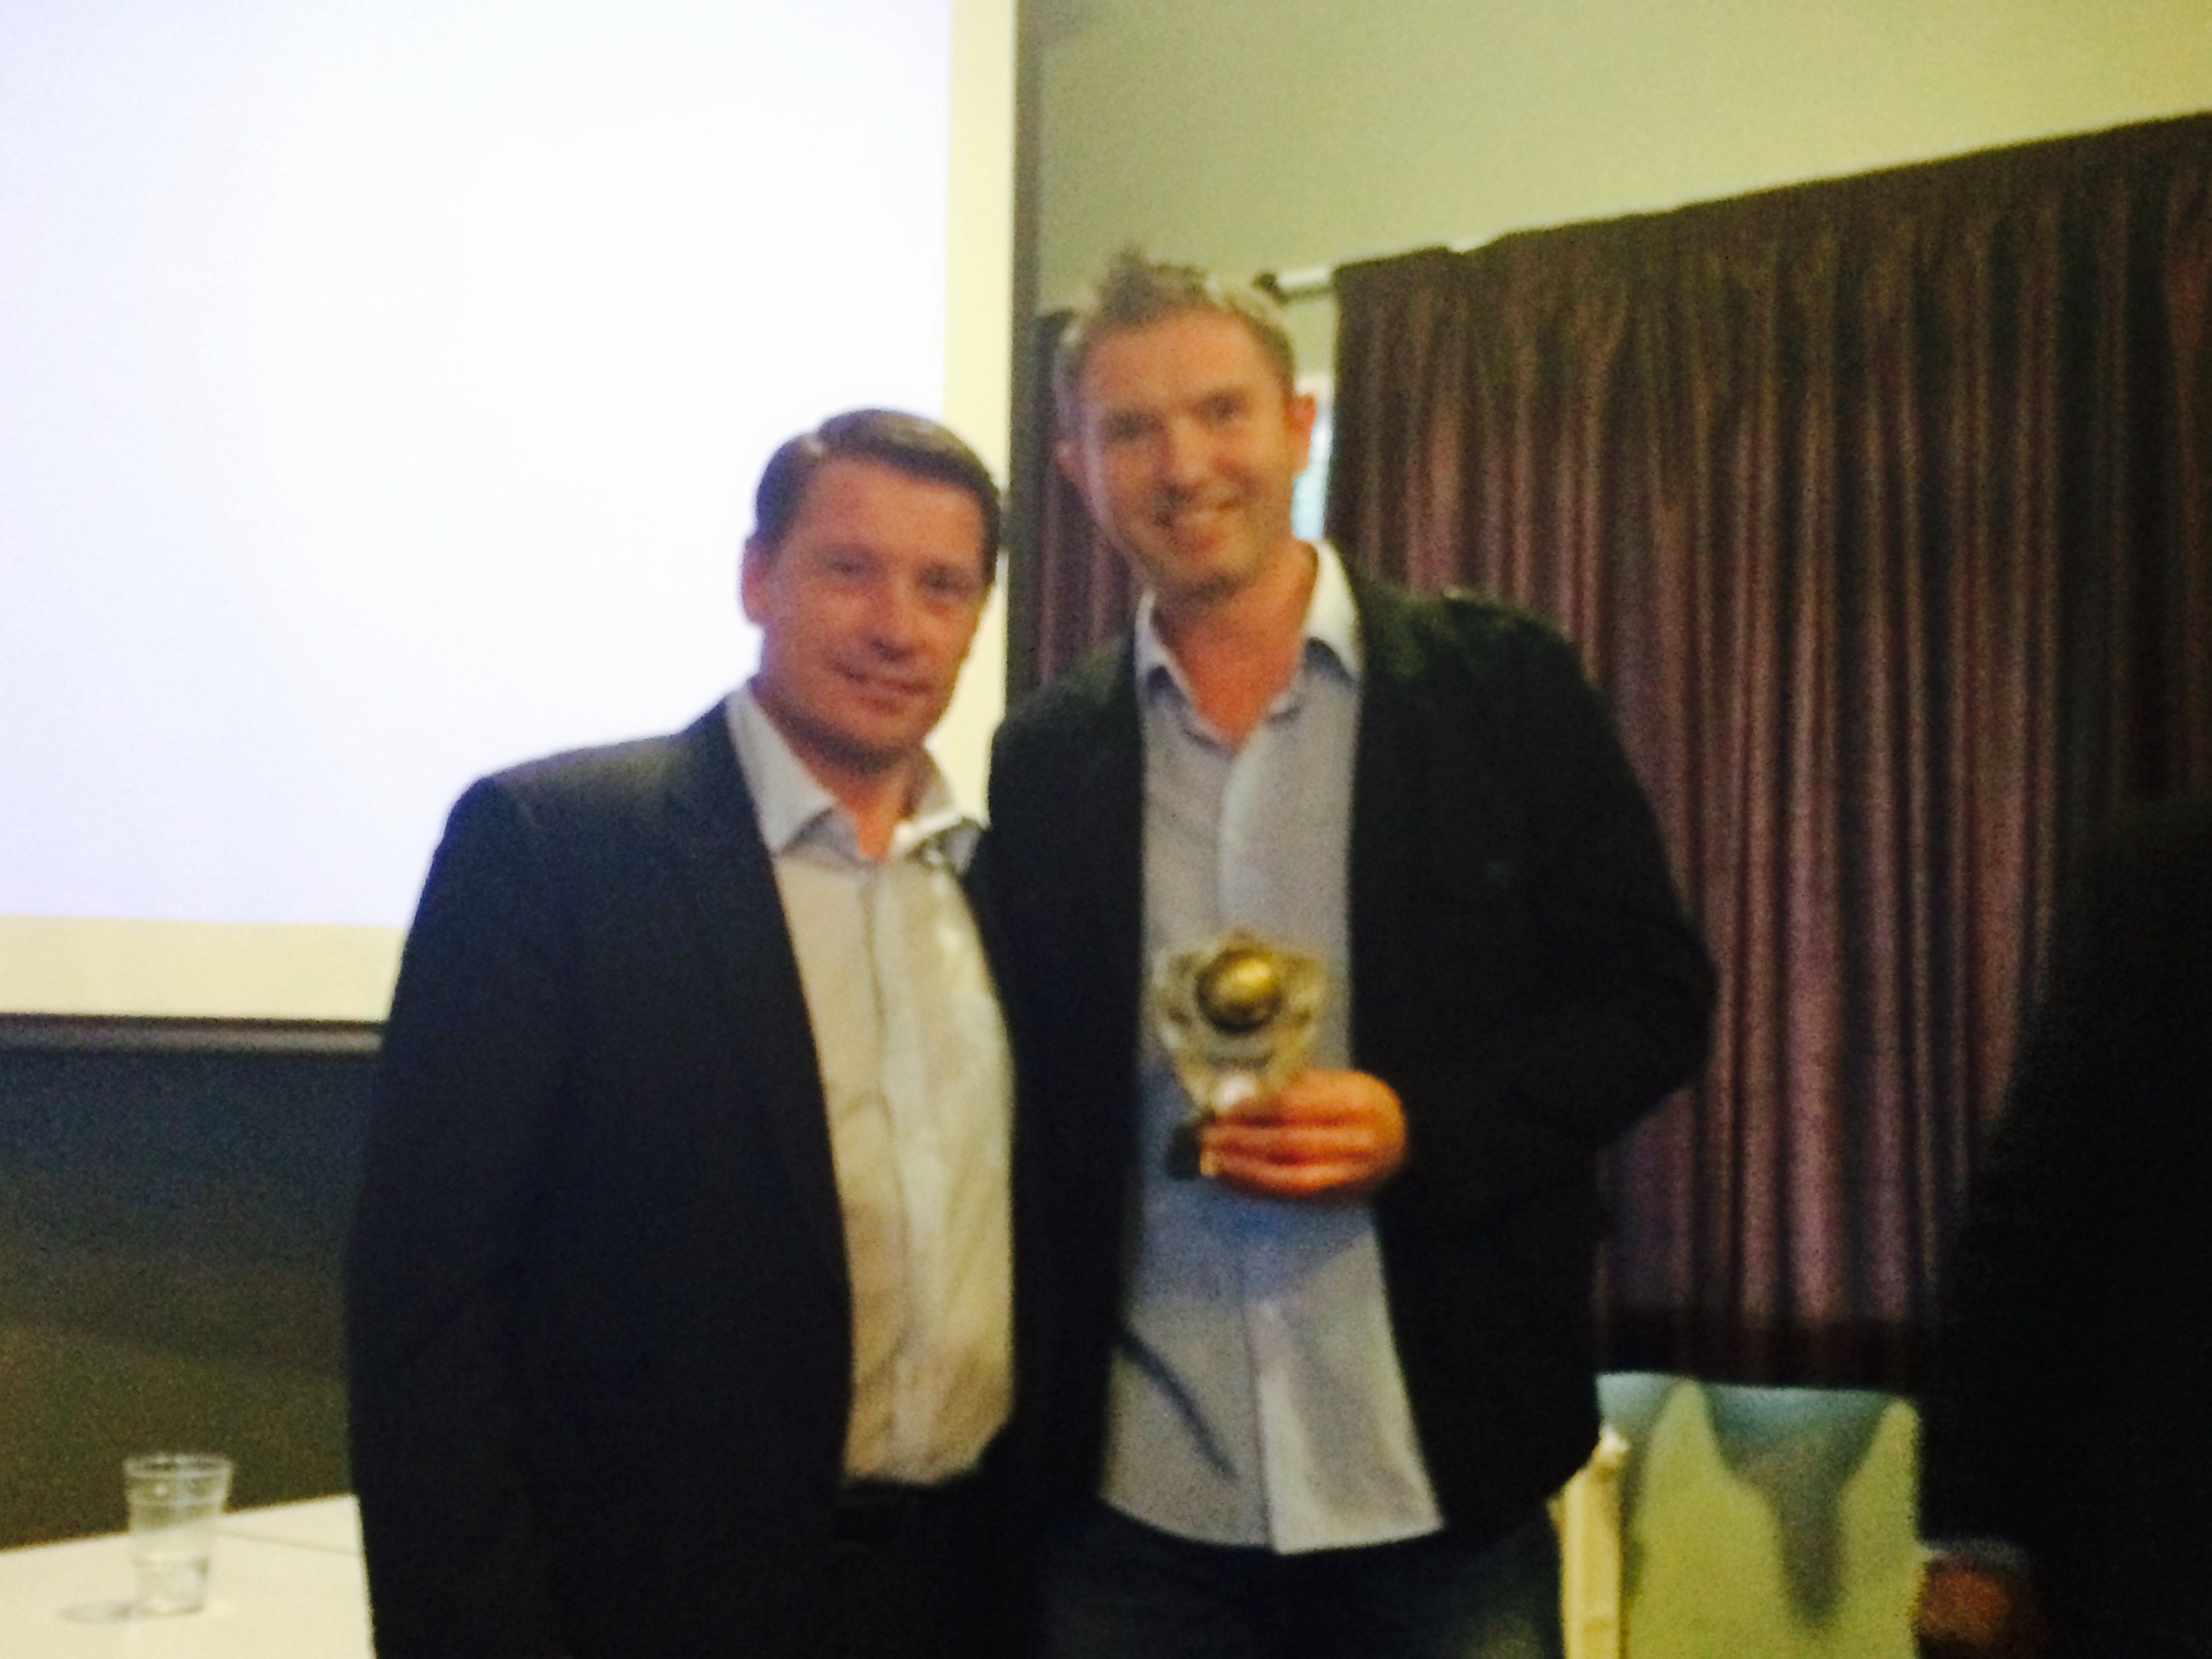 Petr Holecek - Outstanding Contribution Award